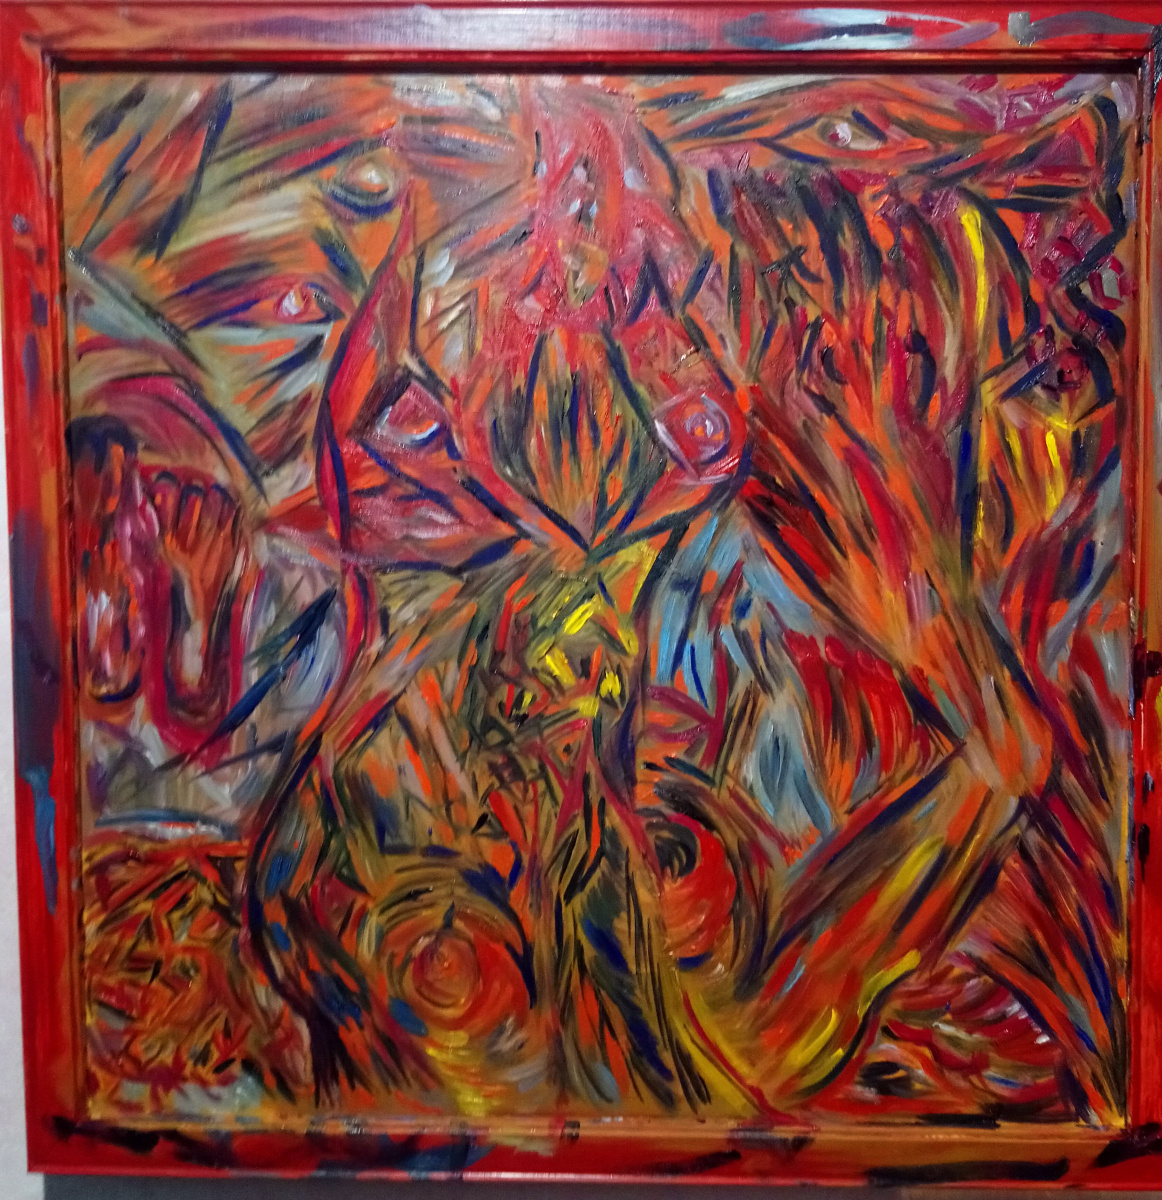 Pavel Puzyr. Time and space in red